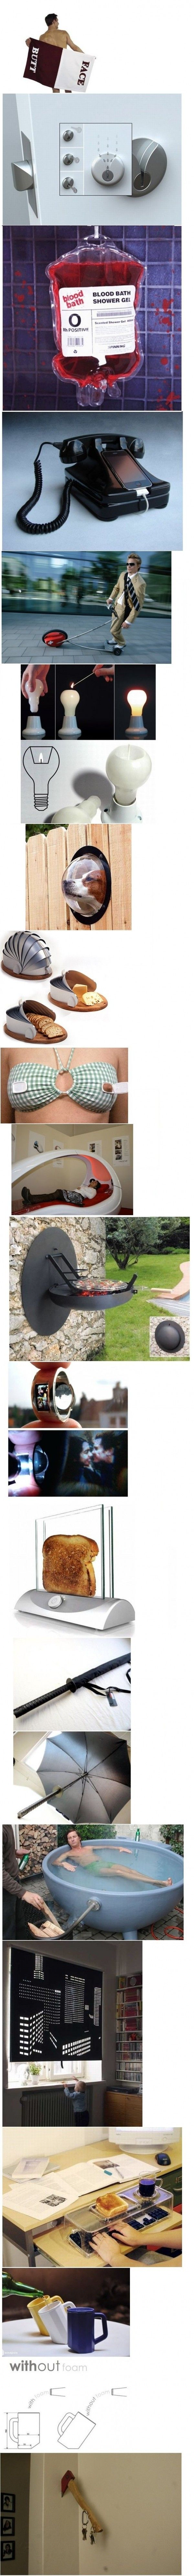 cool and weird inventions